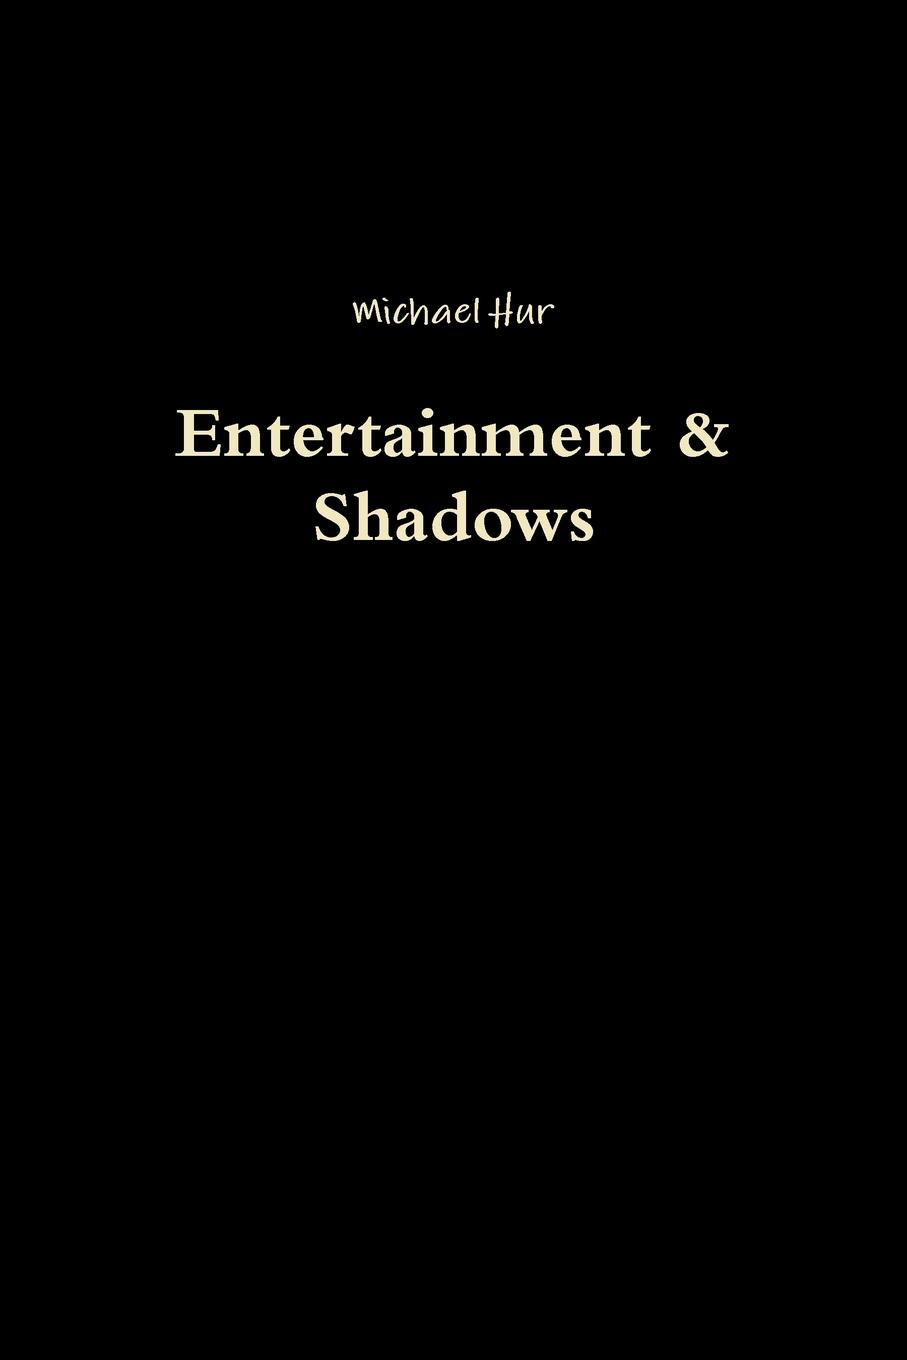 Michael Hur Entertainment . Shadows example playing in the shadows